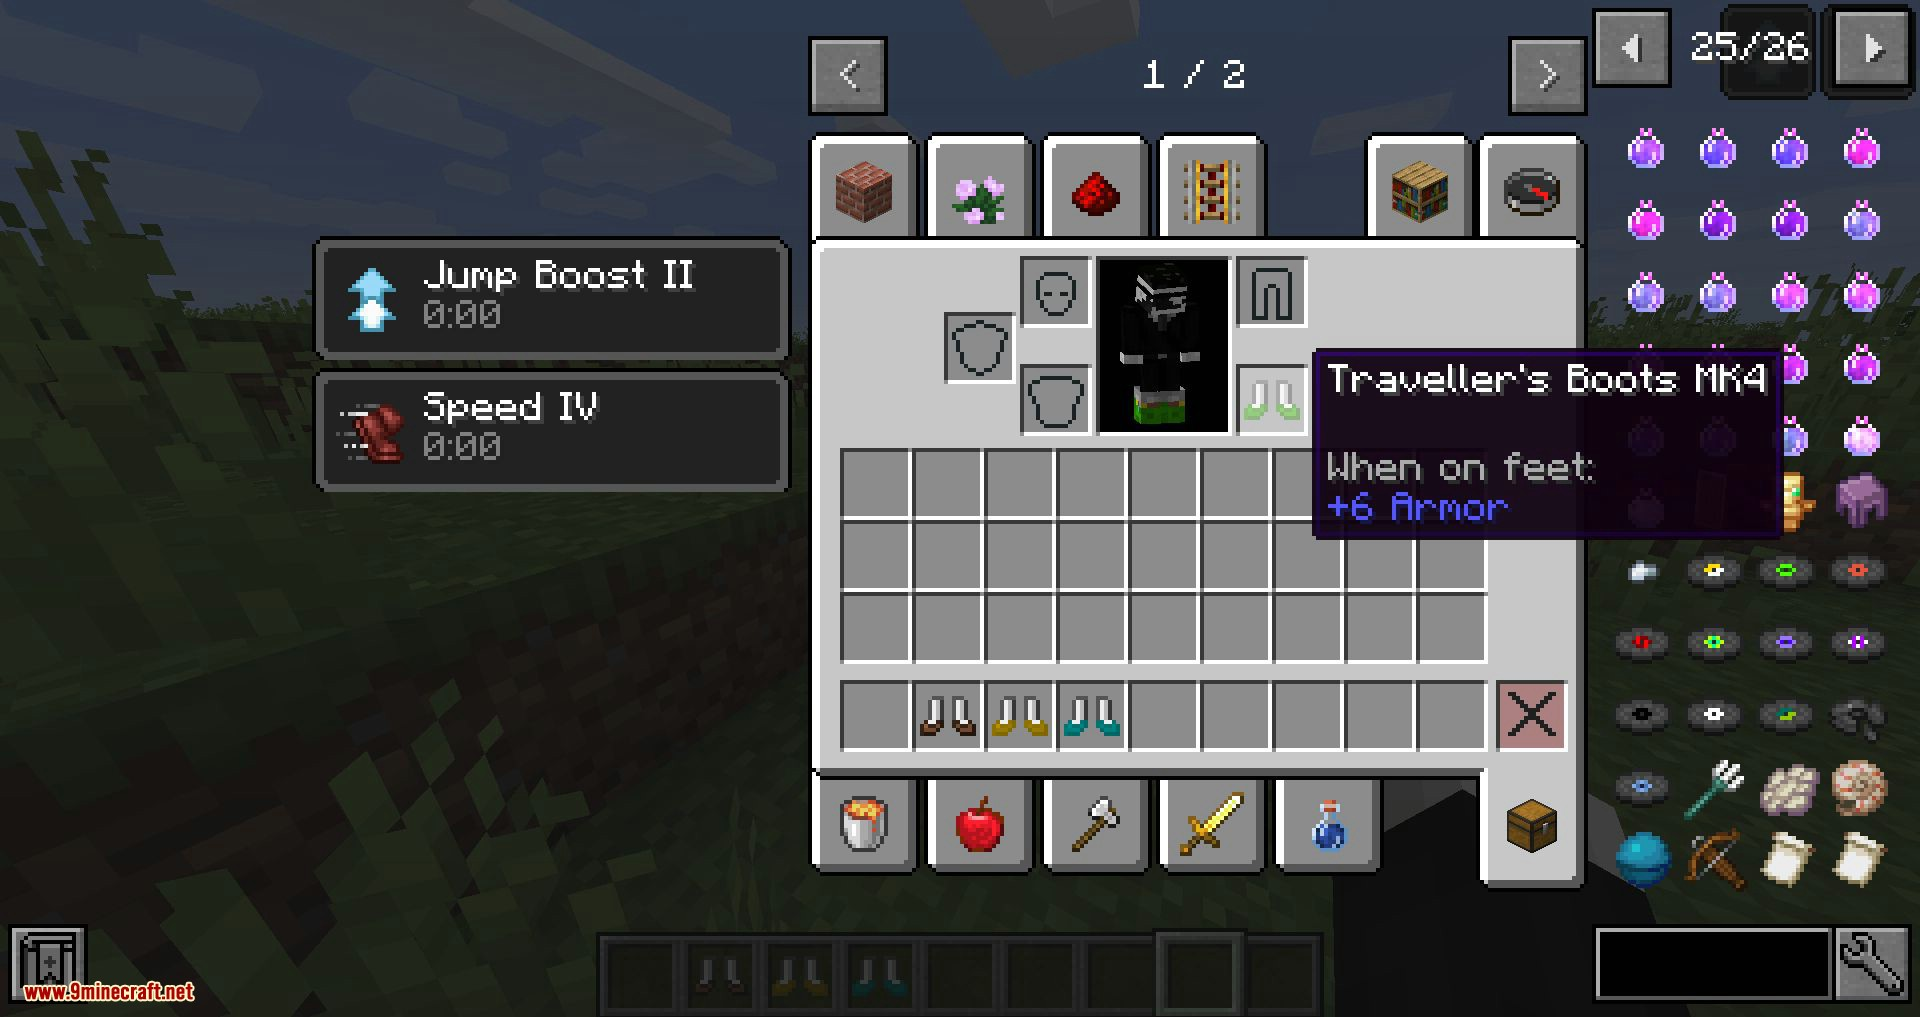 Traveller_s Boots mod for minecraft 07